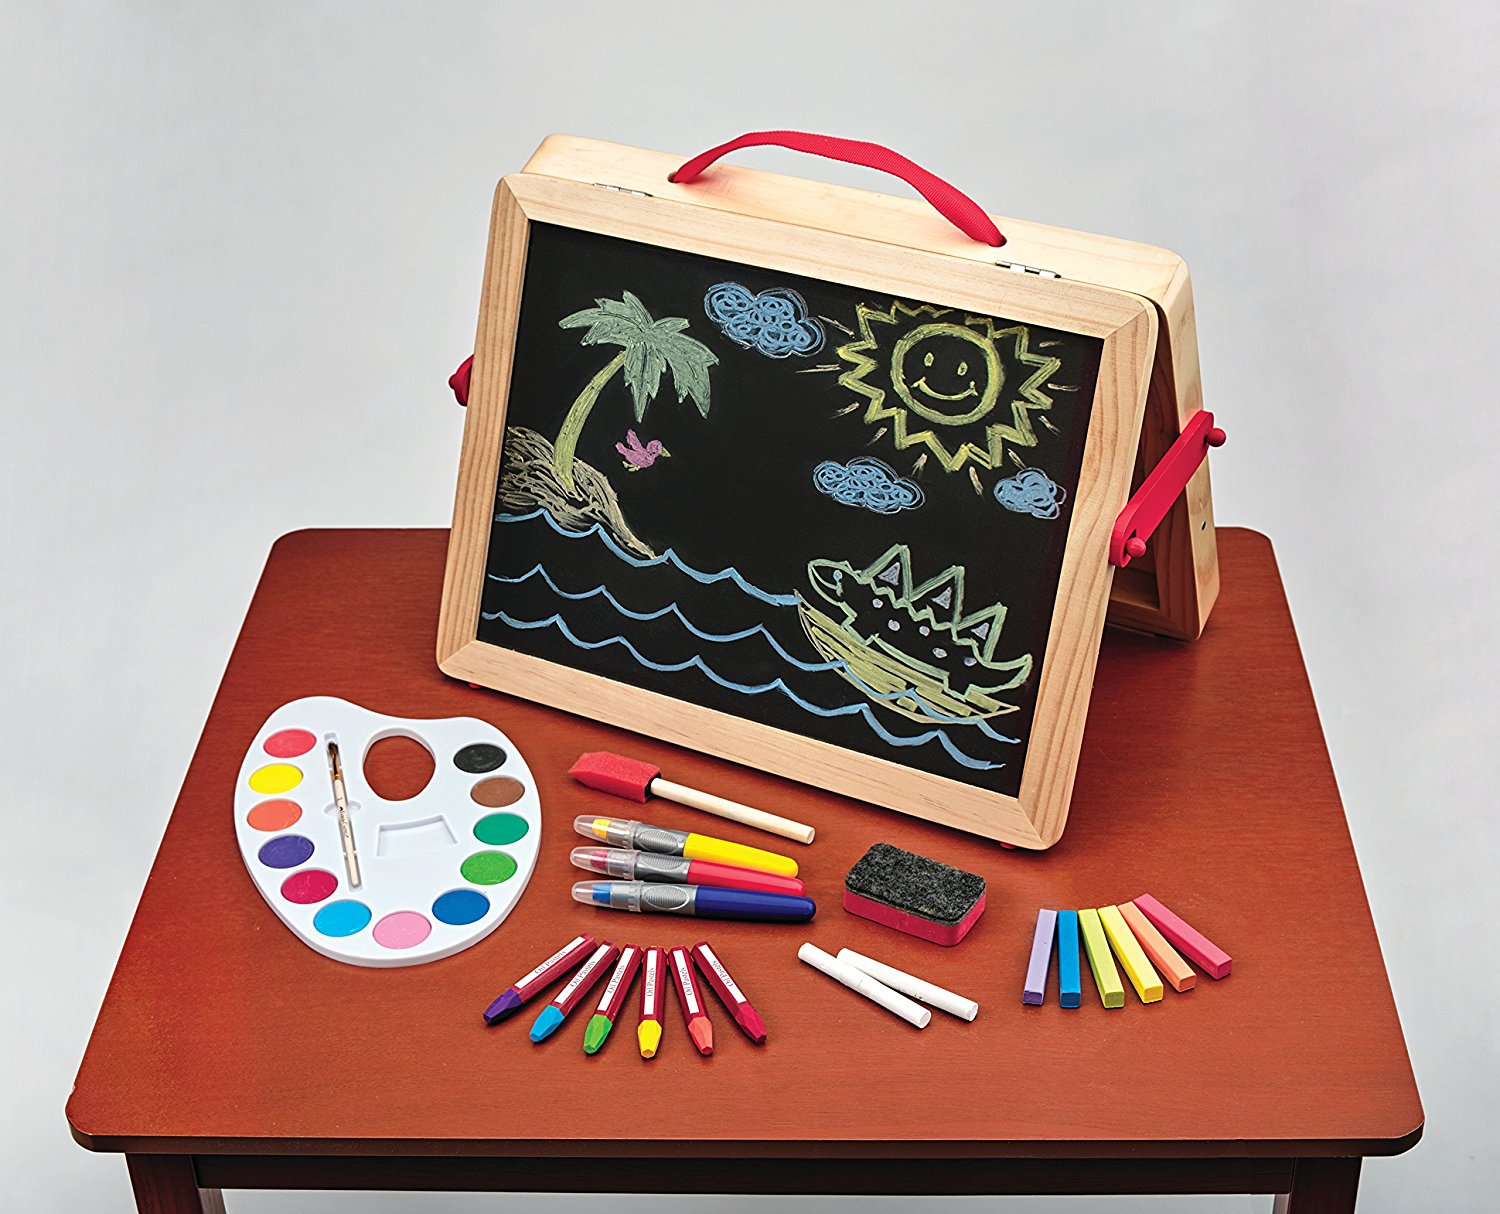 Premium Children's Art Products Your Kids Will Want!